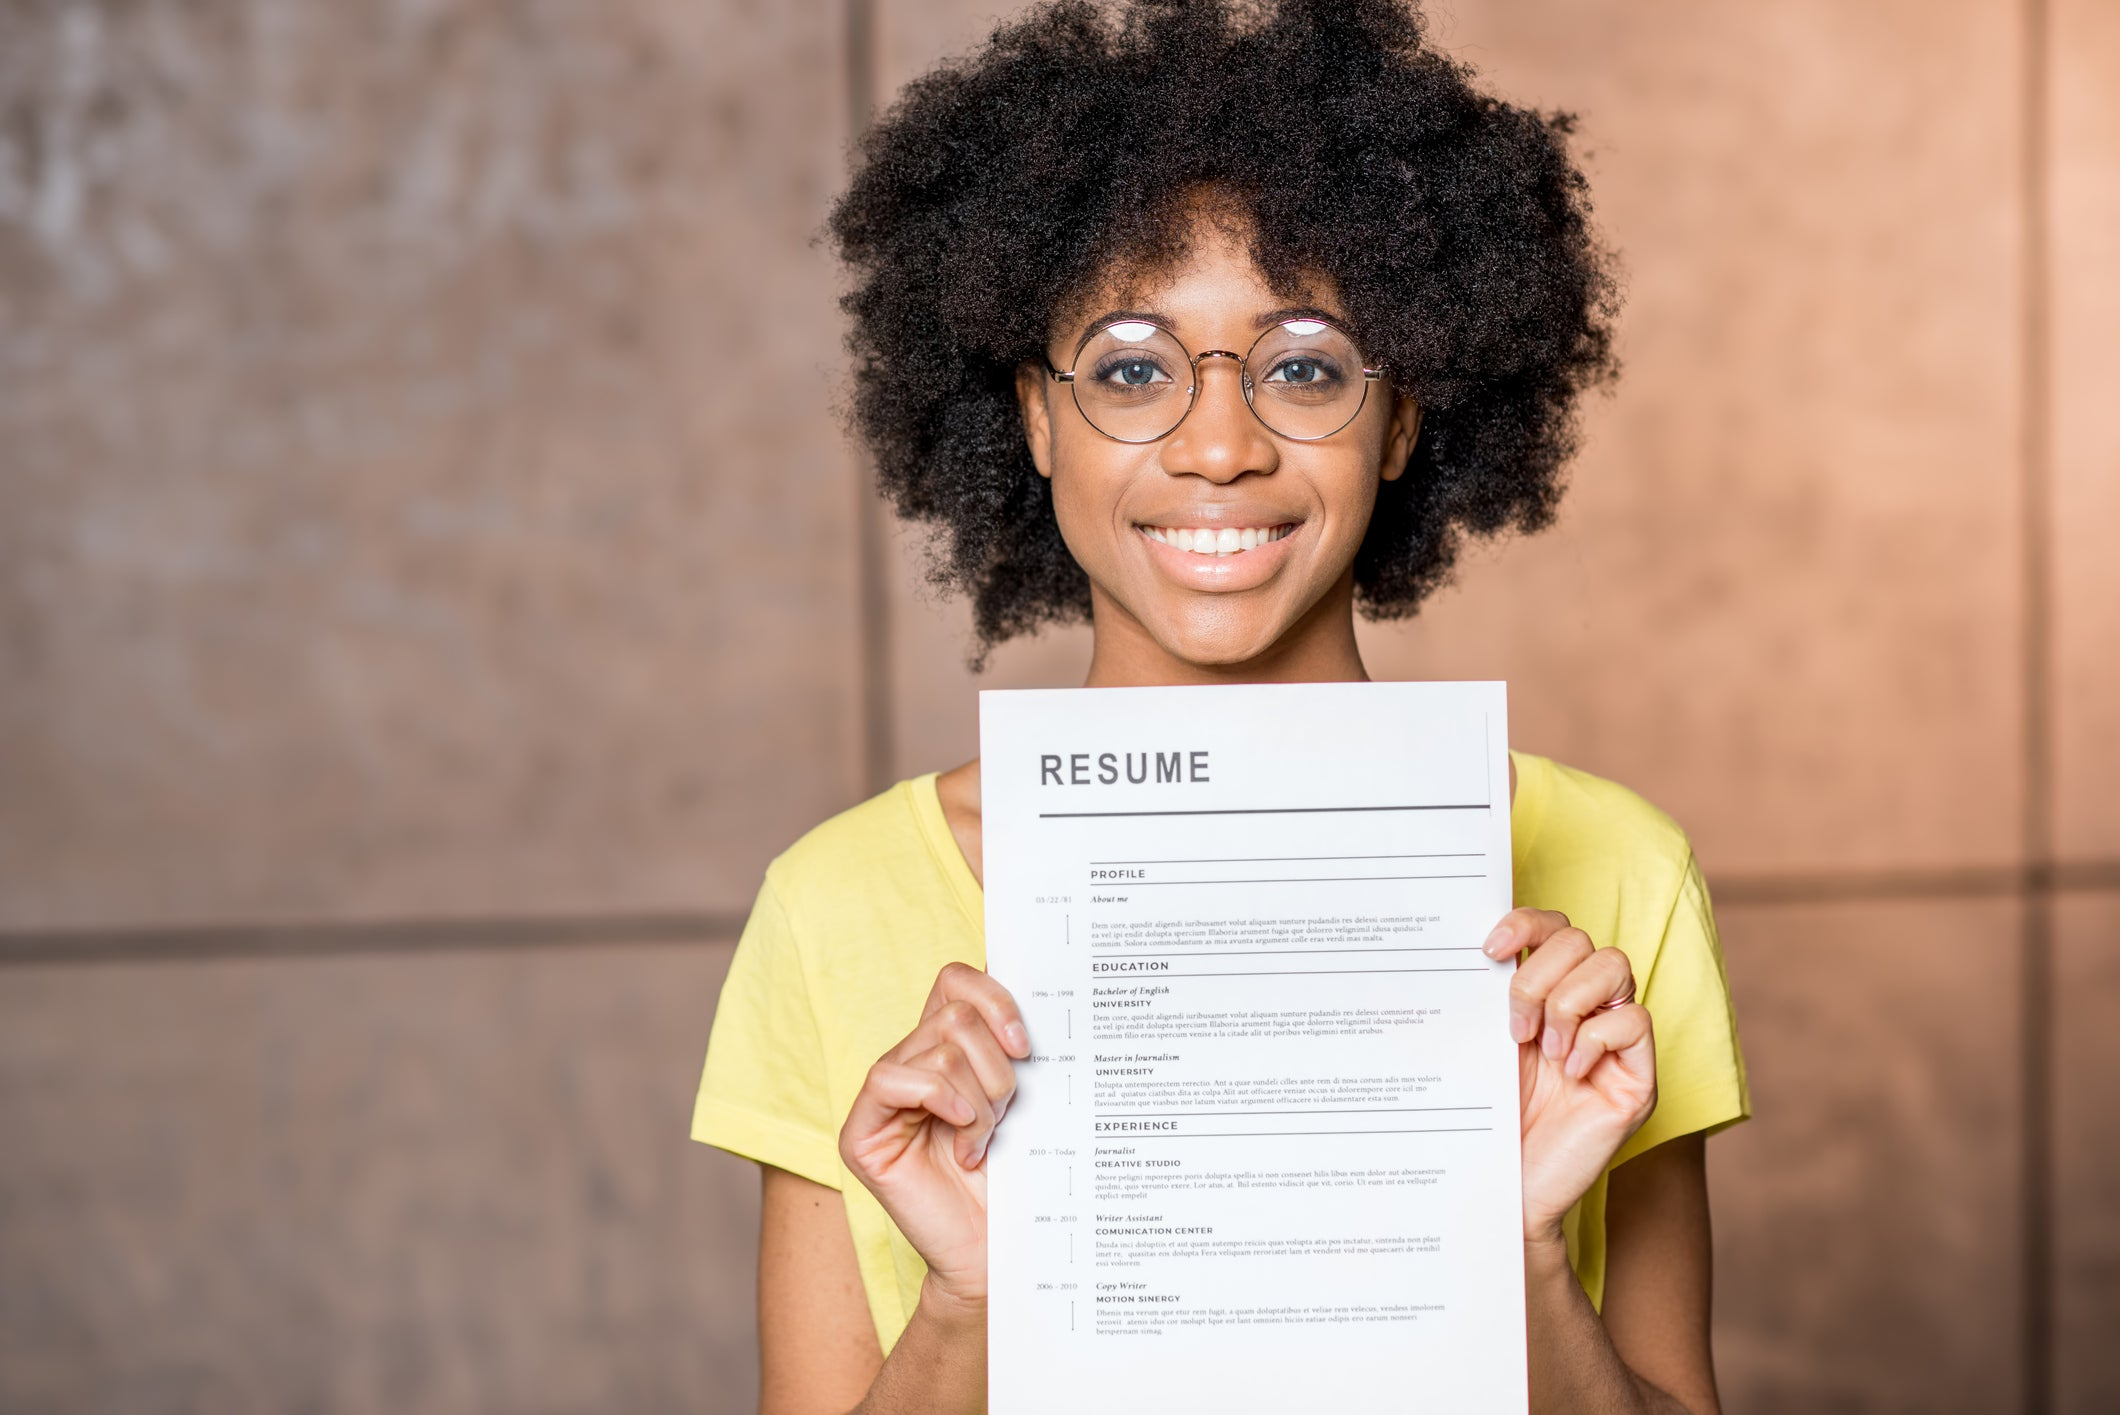 The 13 Best Resume Tips of 2017 | The Motley Fool